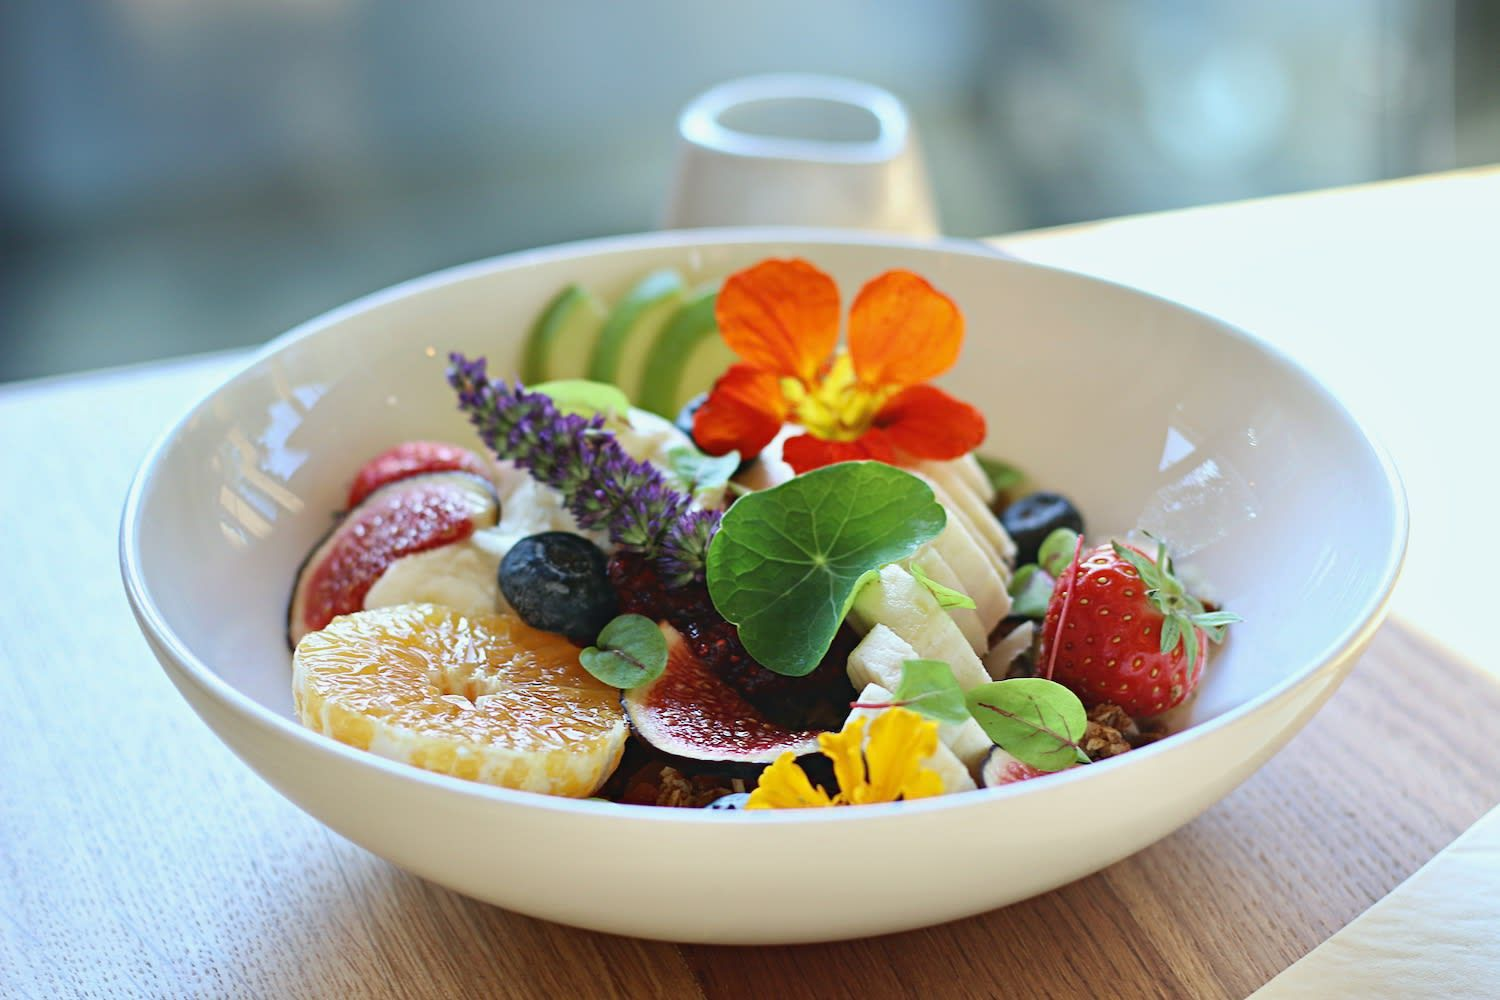 Dignita brunch restaurant features healthy dishes like this bowl of fresh fruit and nasturtiums